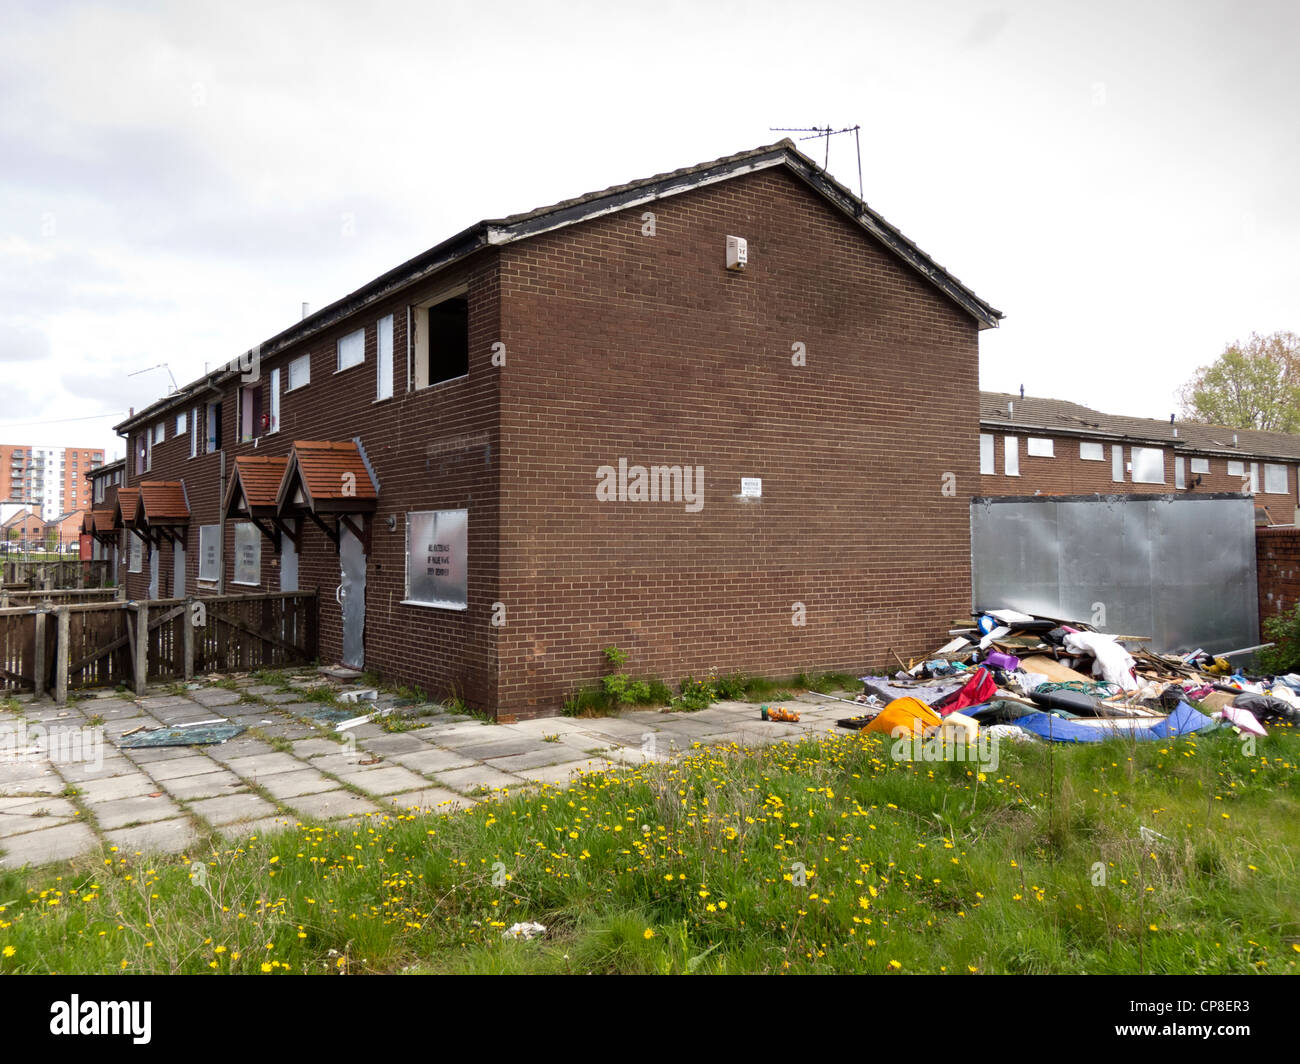 England, Salford, Lower Broughton, 1980's council housing ready for demolition - Stock Image